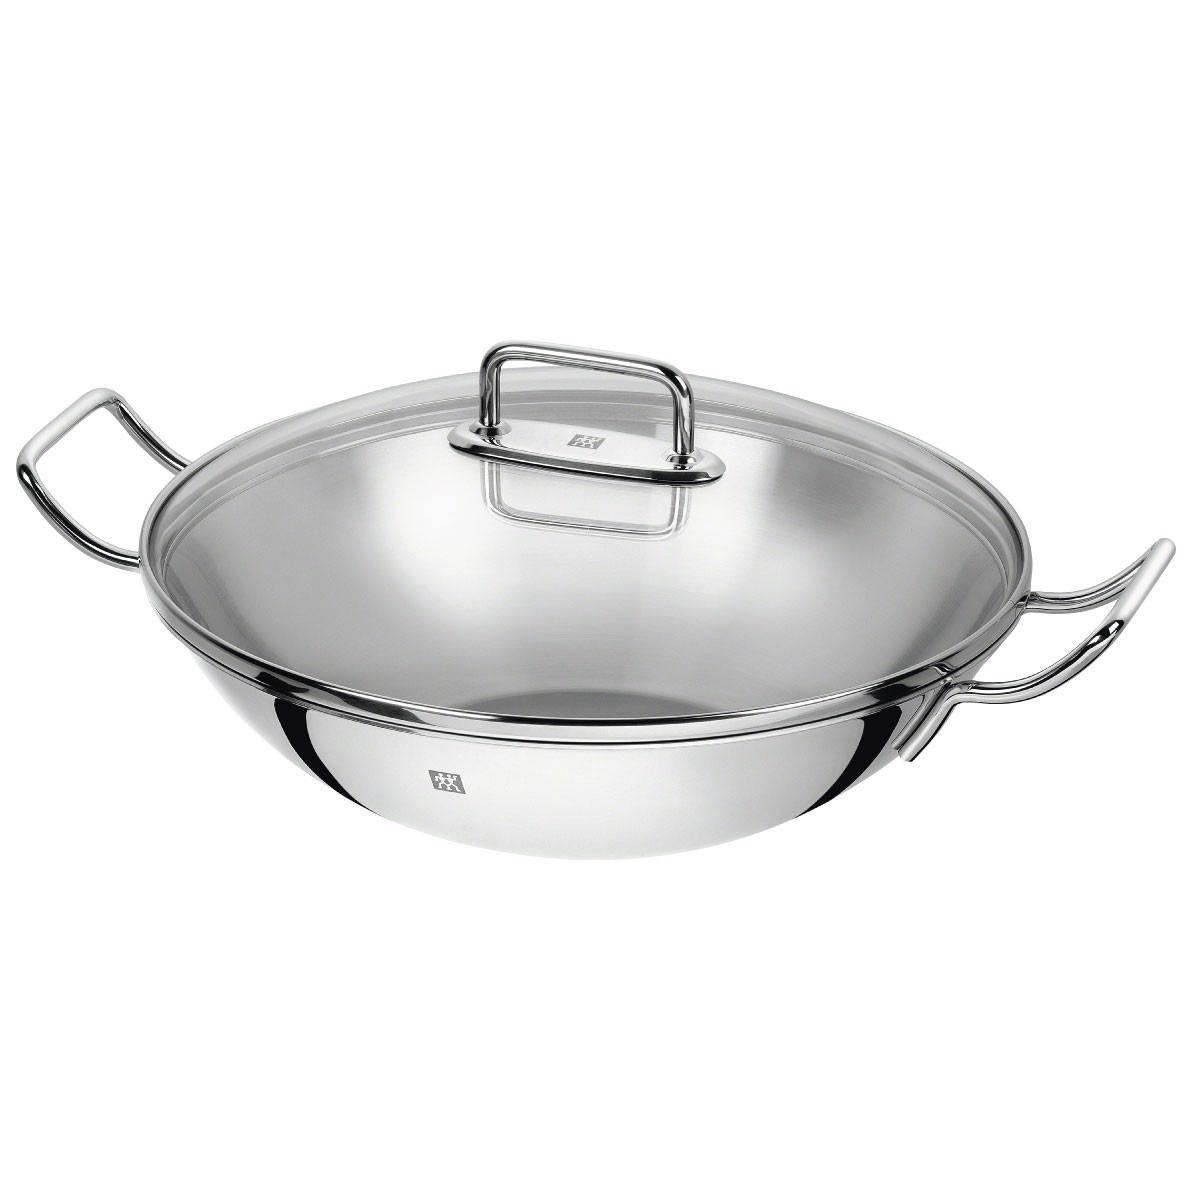 ZWILLING - ZWILLING Plus wok - 32cm